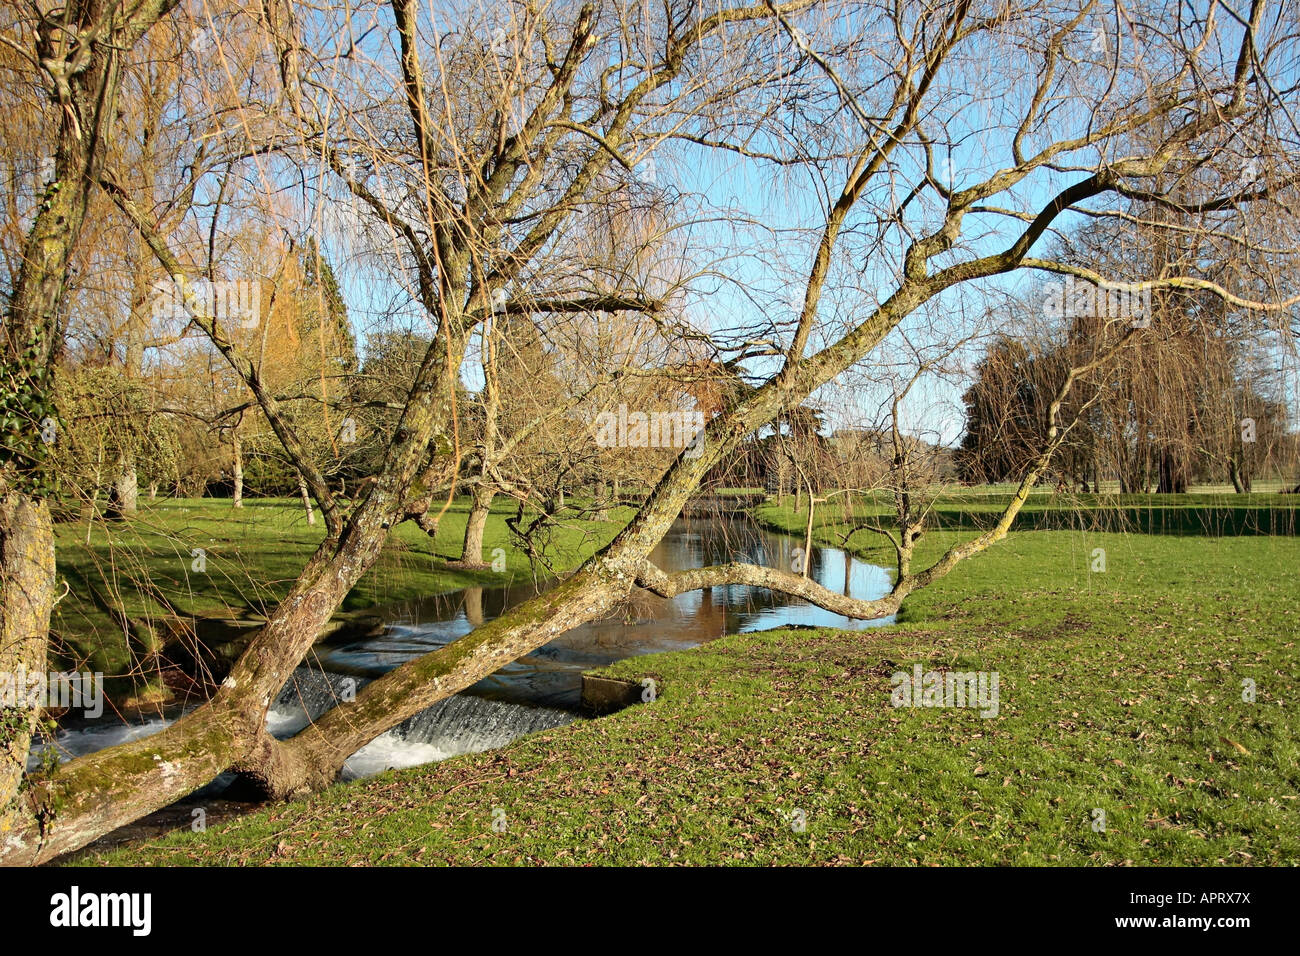 Weeping Willow tree leaning over stream at West Dean Gardens, Sussex, England Stock Photo